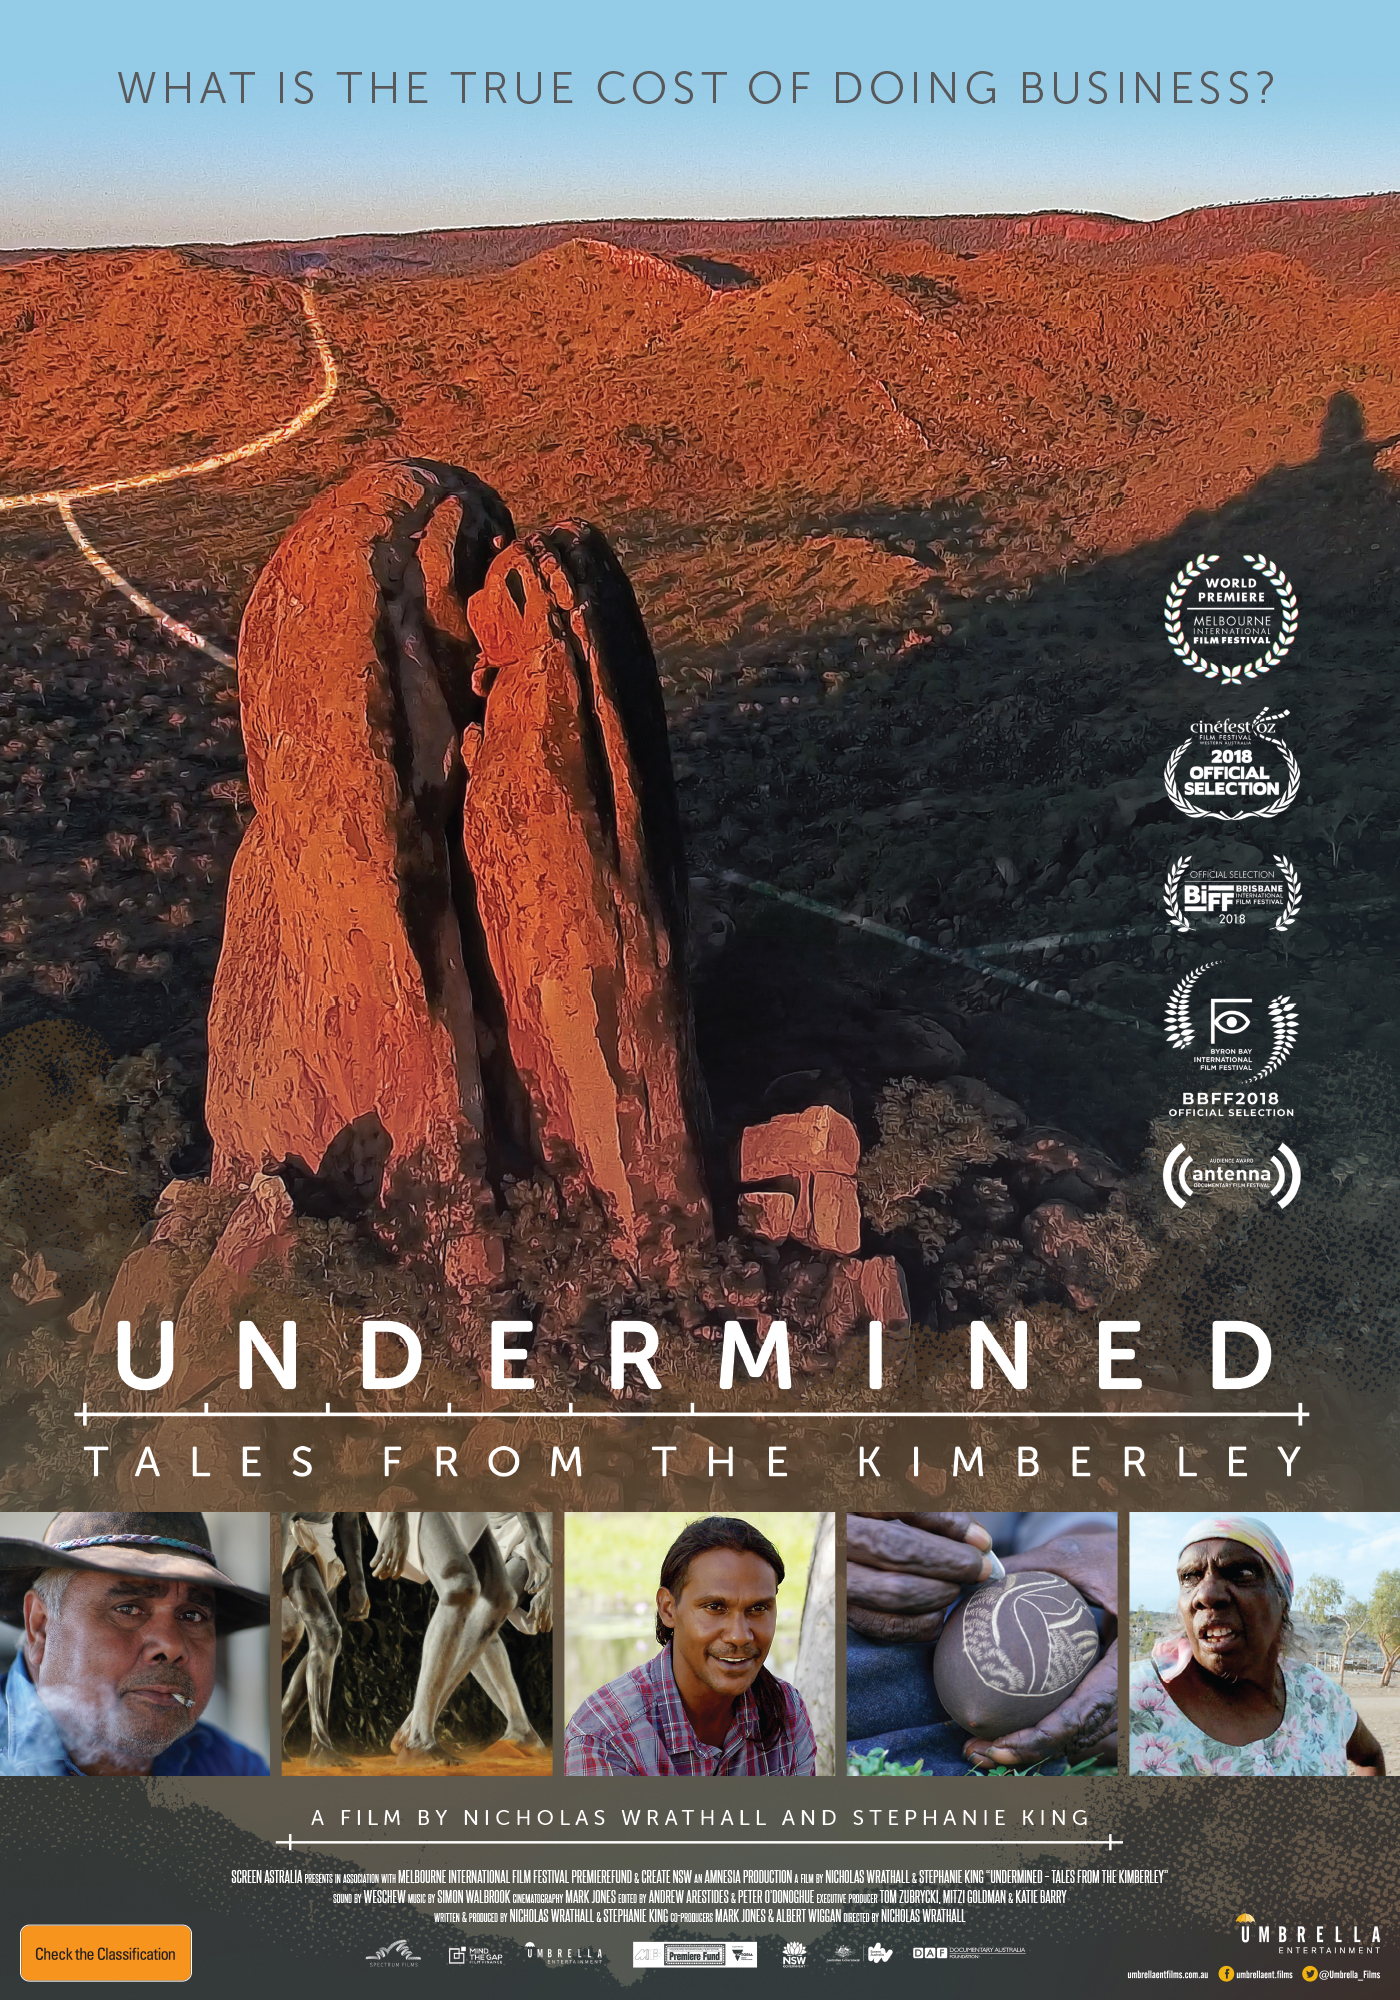 UNDERMINED poster 700mm x 1000mm_FA.jpg